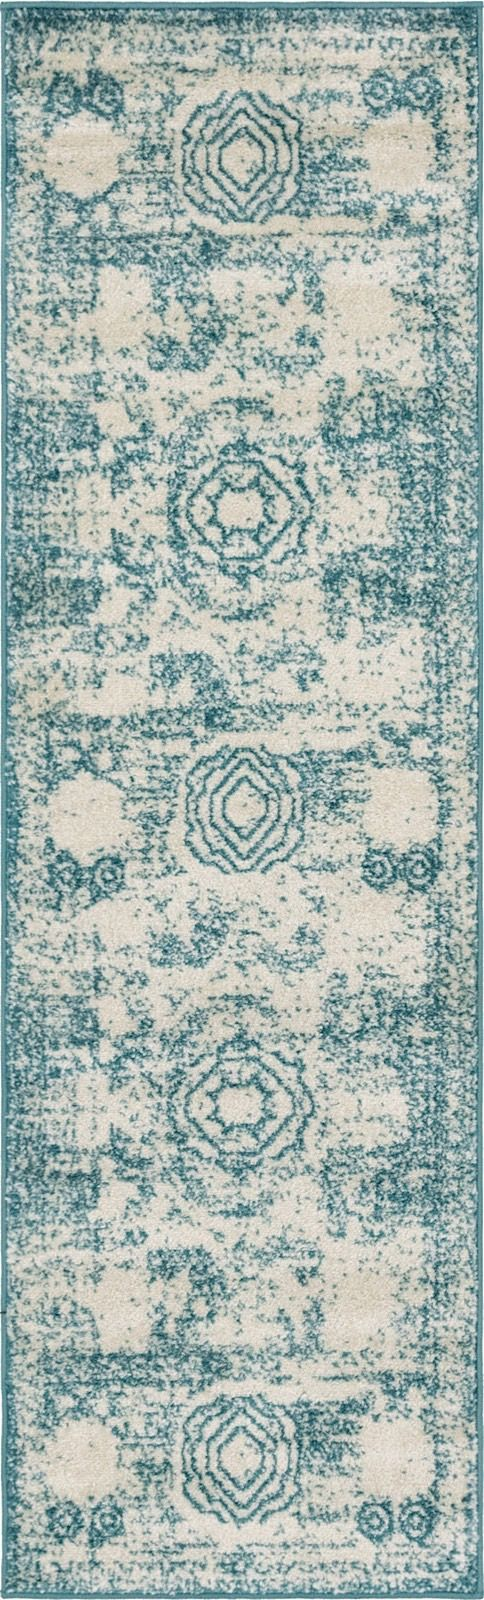 rugpal vienna traditional area rug collection